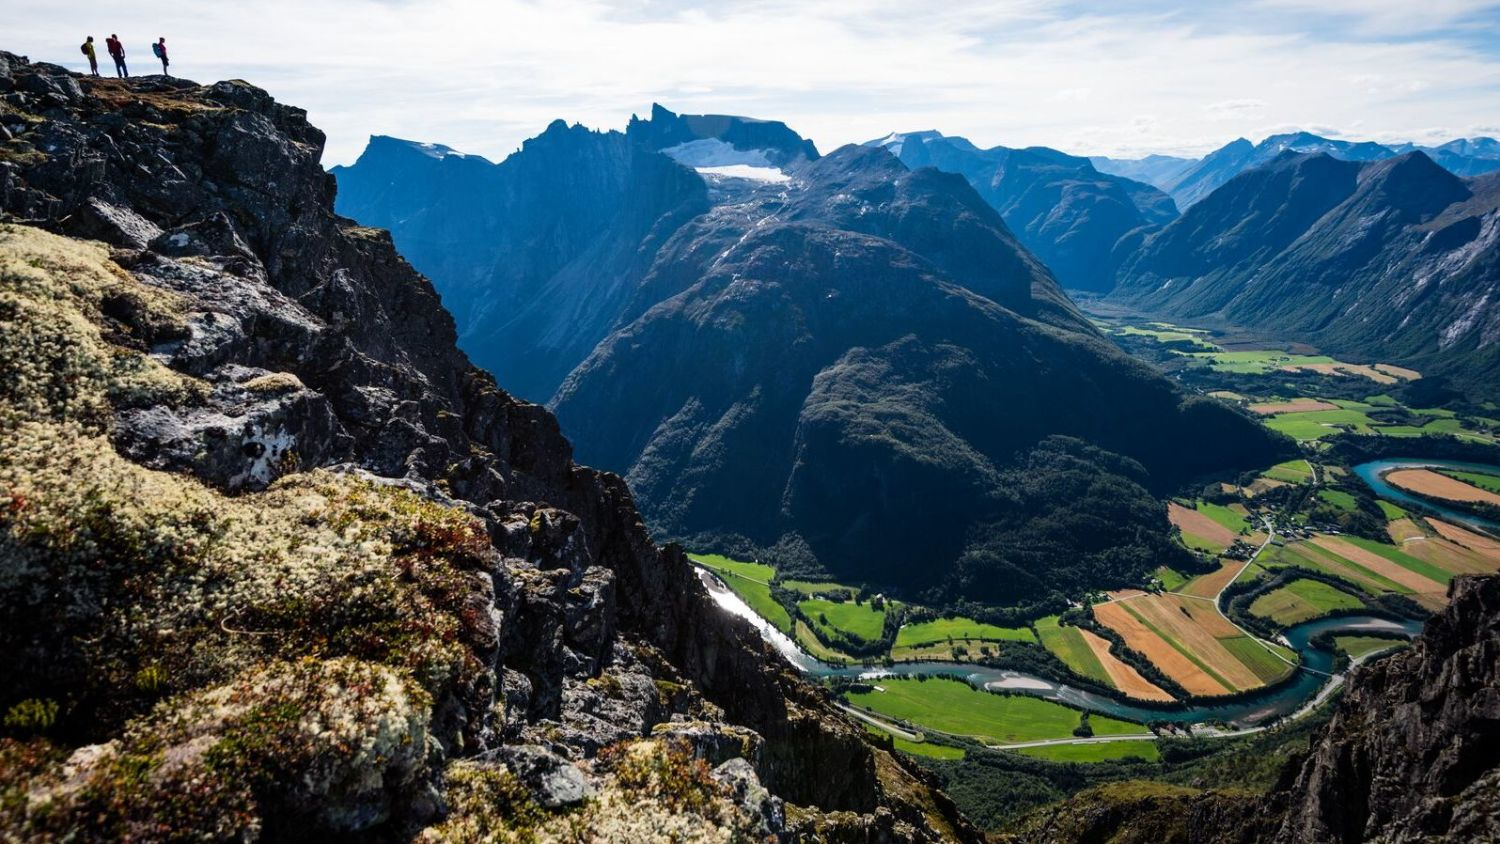 Hiking with a magnificent view to the Romdalen valley. Photo: Mattias Fredriksson, visitnorway.com